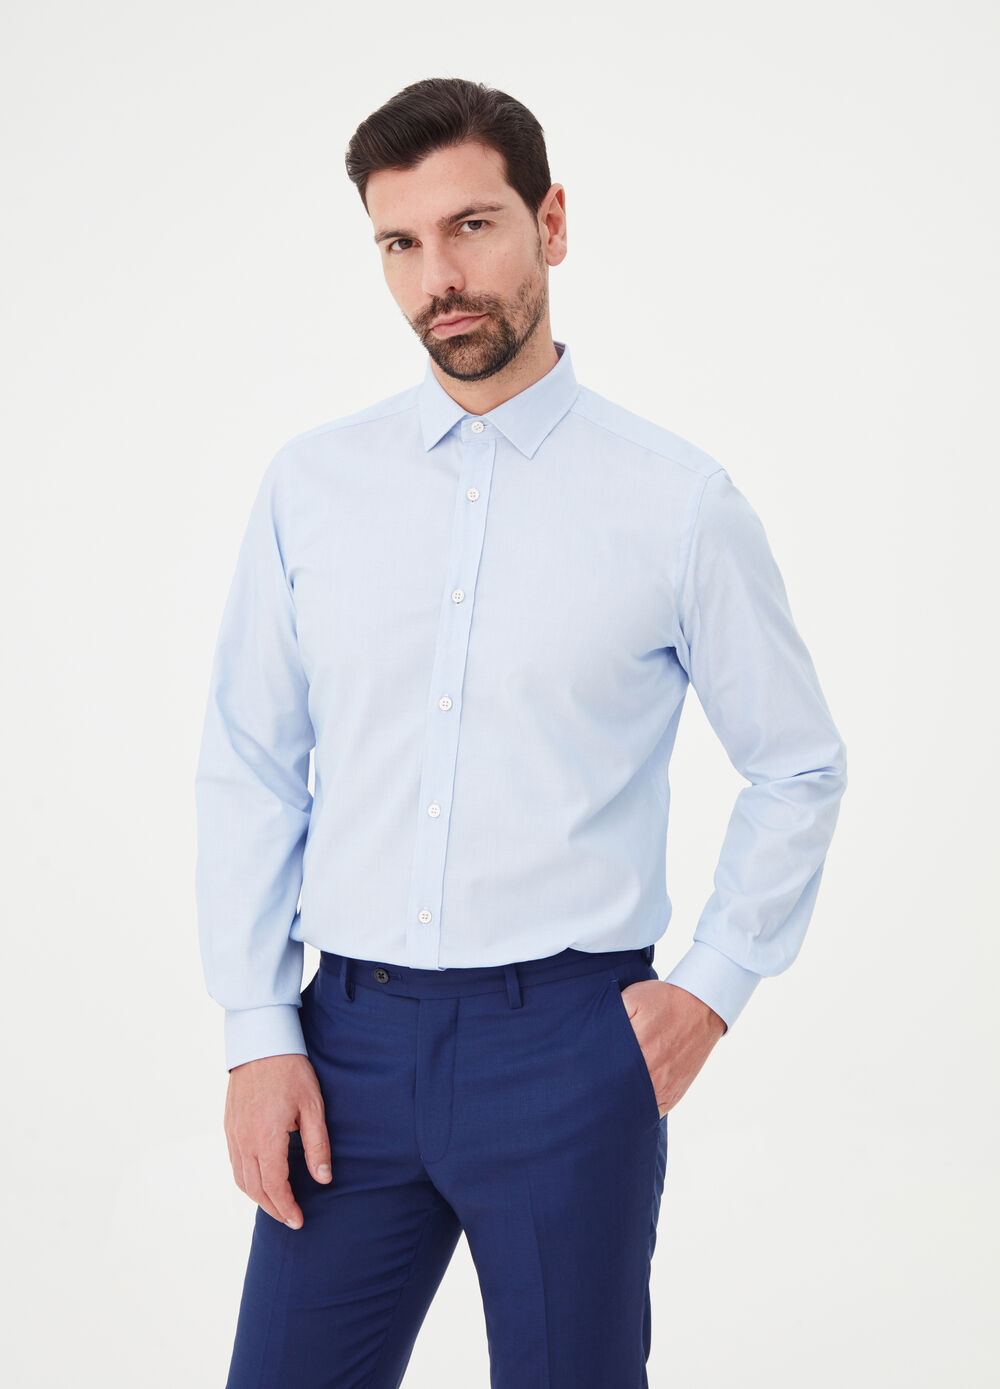 Slim-fit shirt with rounded cuffs